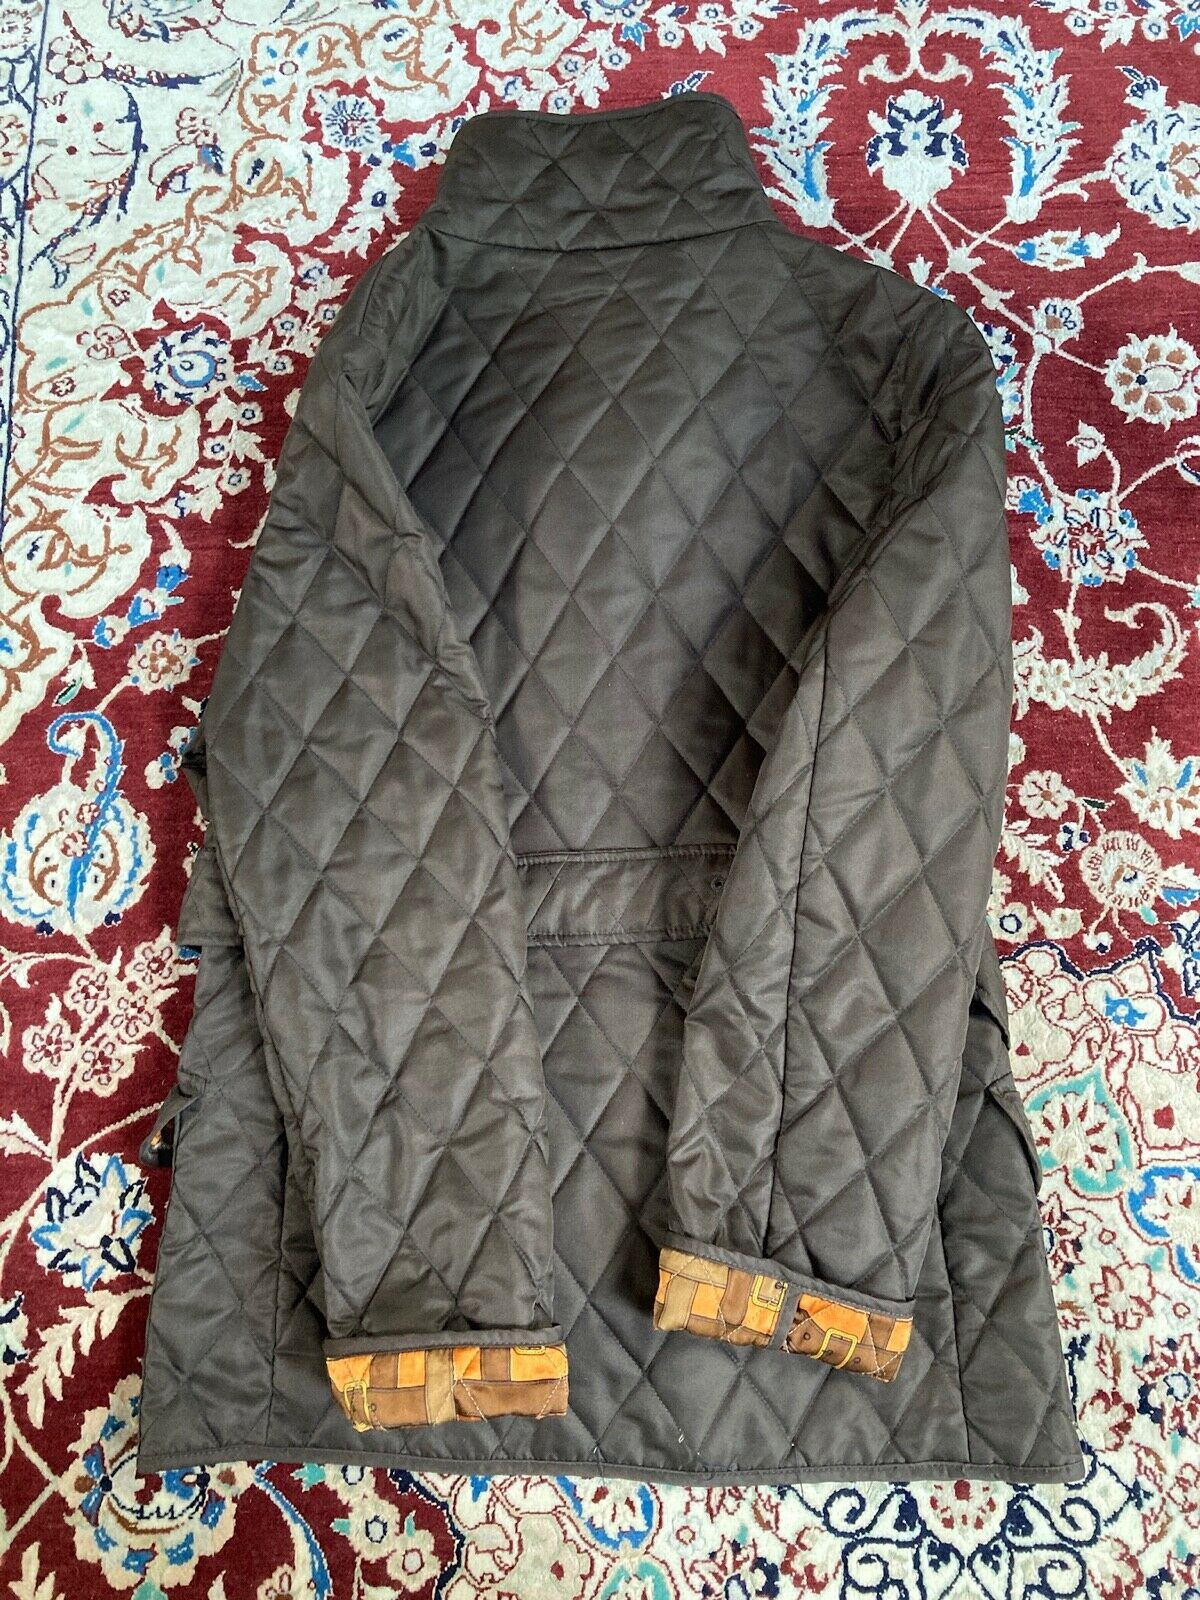 Burberry womens quilted jacket - image 6